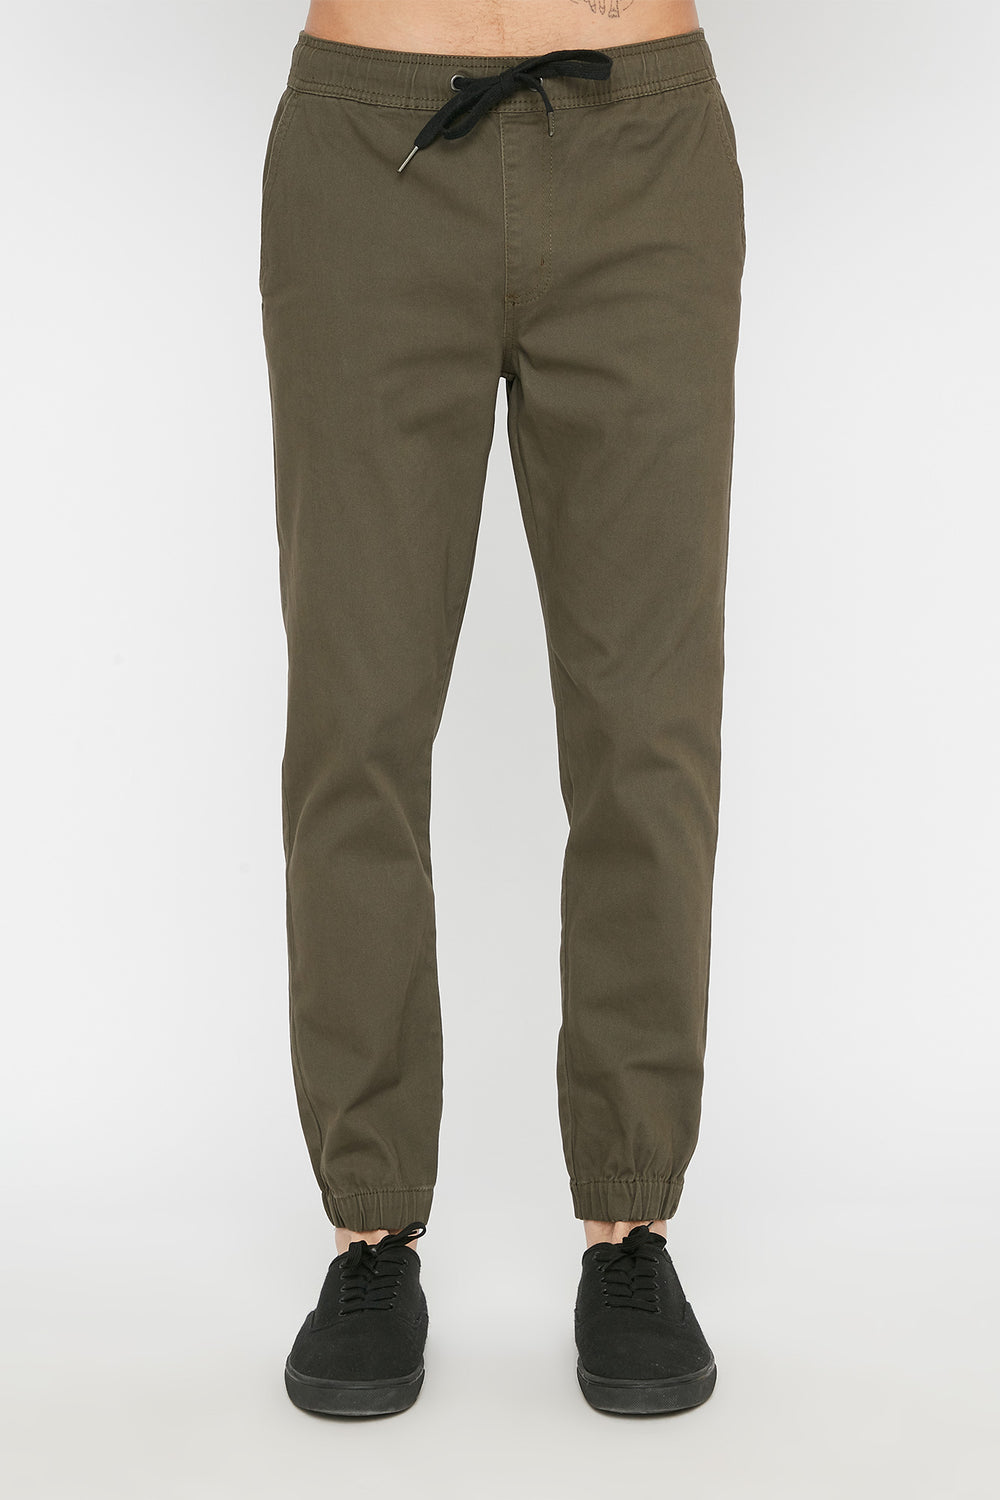 West49 Mens Solid Twill Jogger Khaki